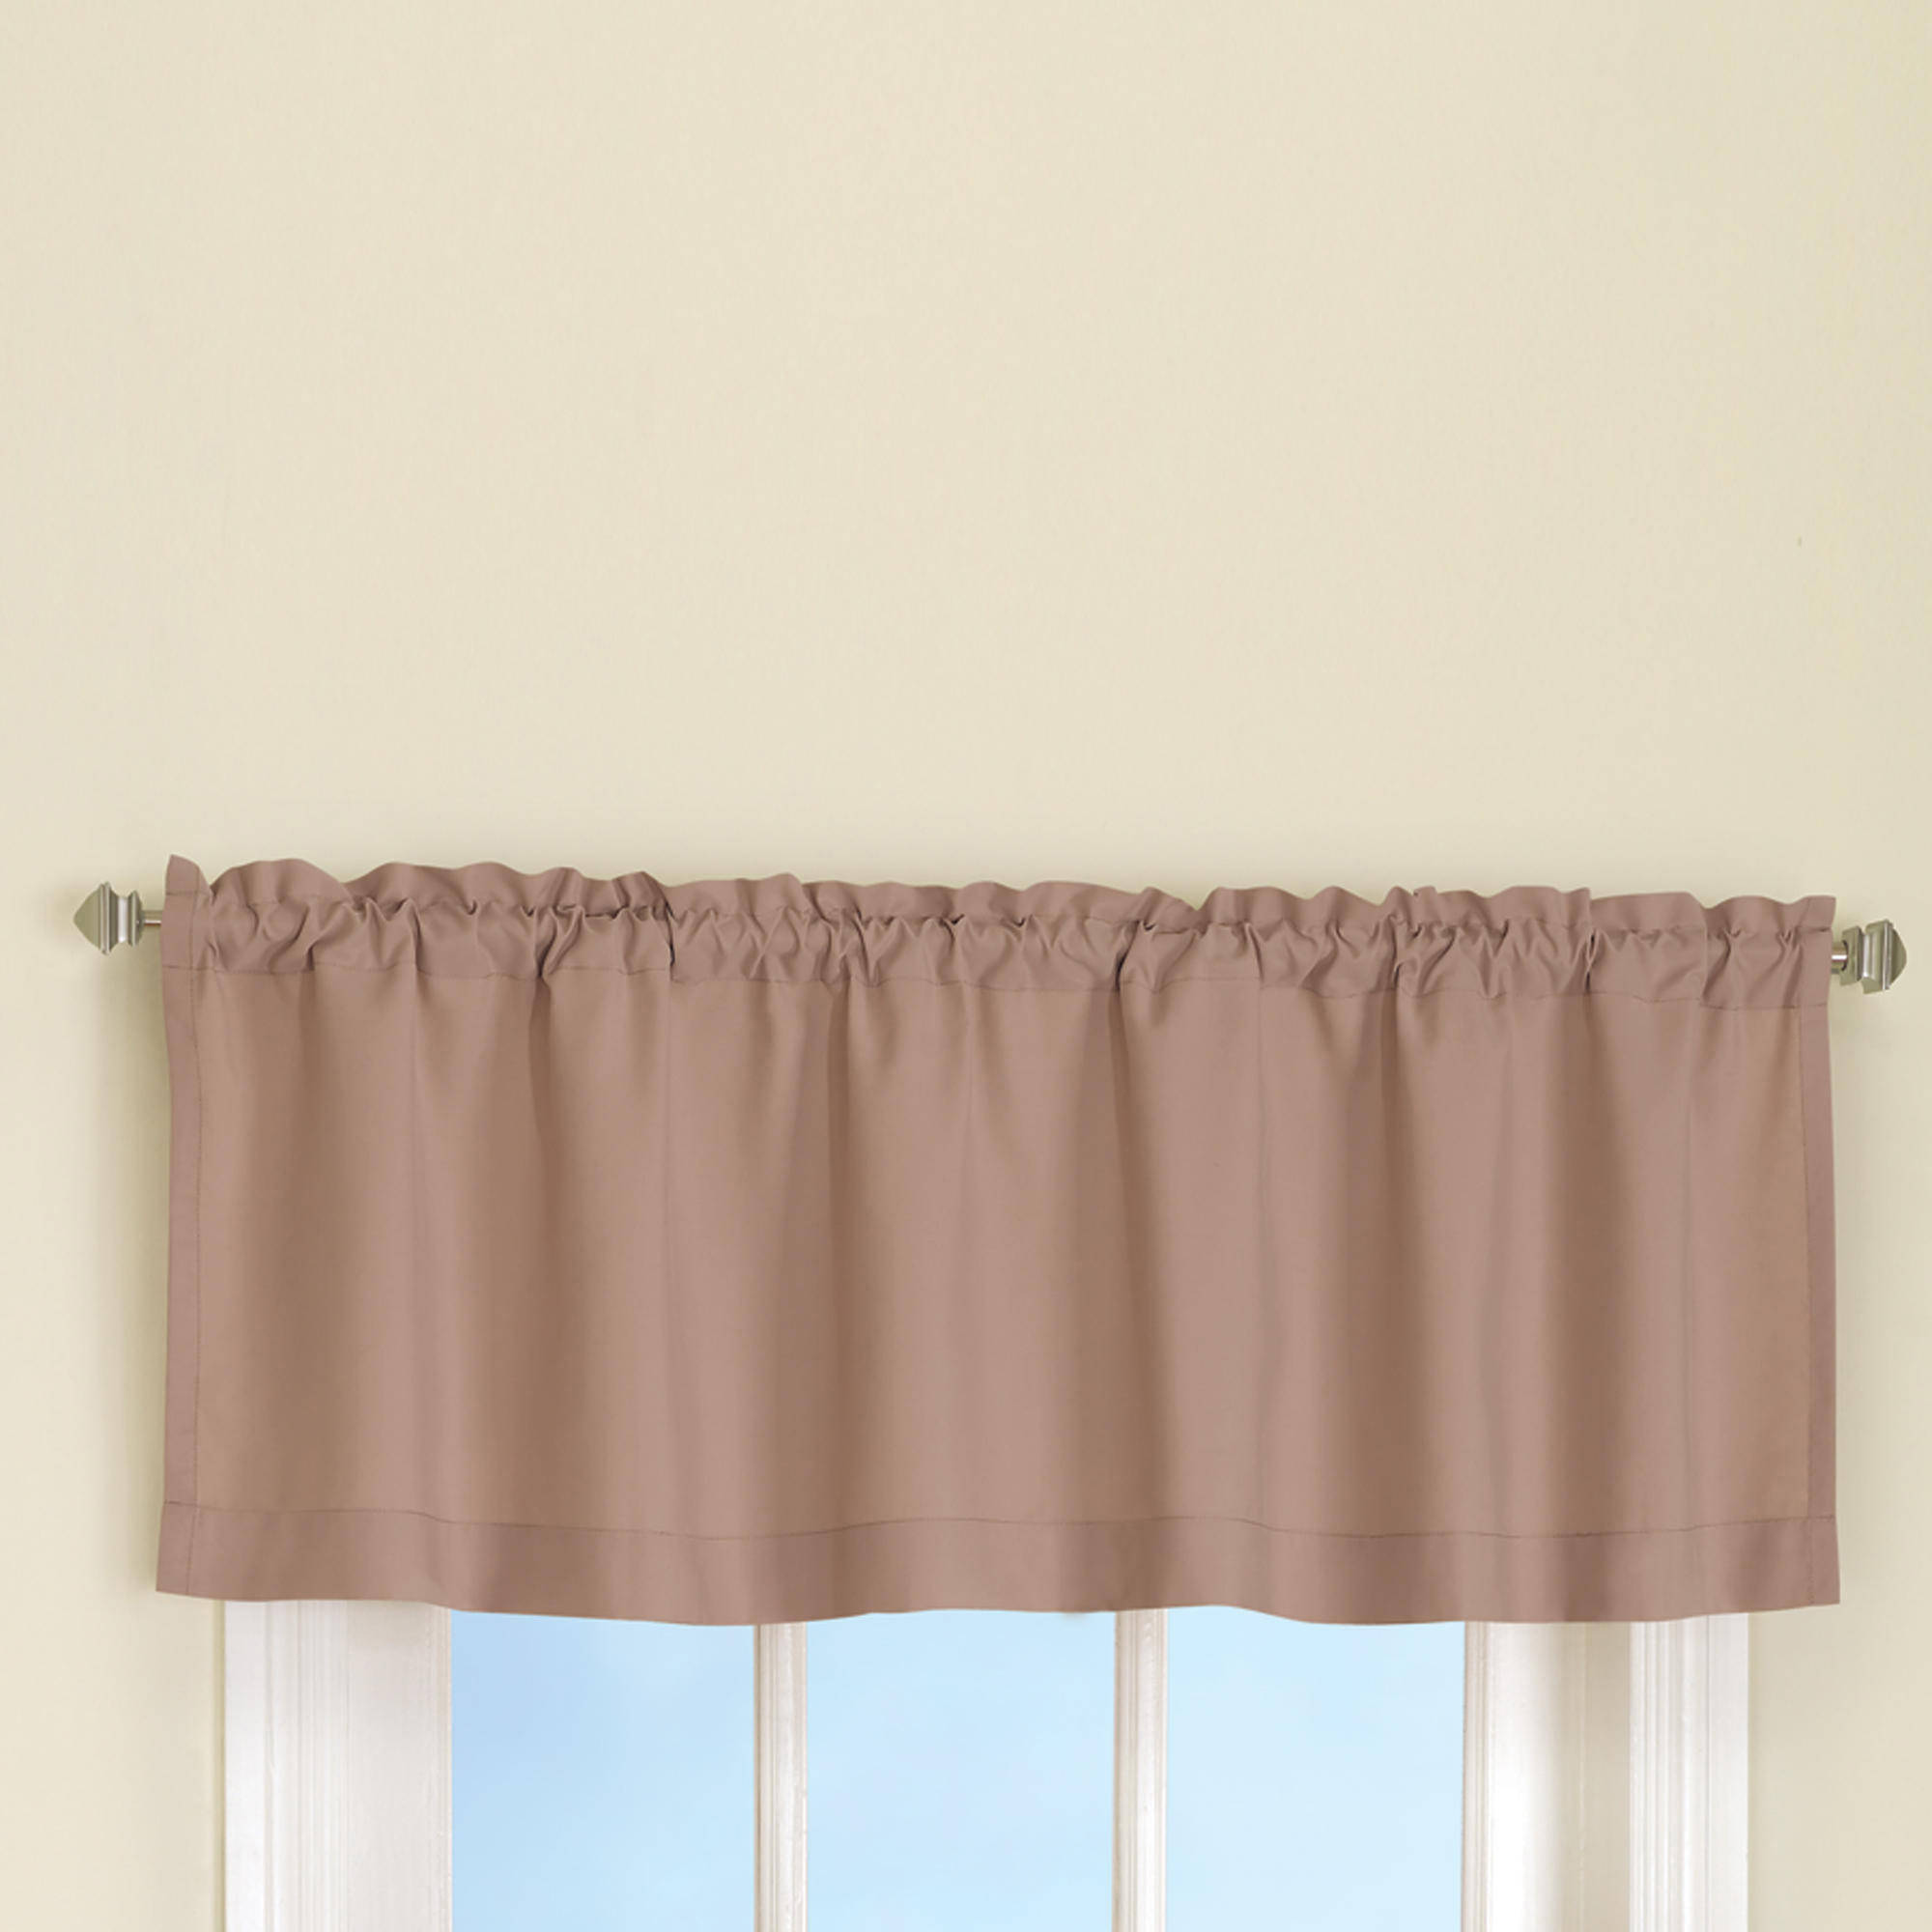 windows plaid valance by board stetson rlf to garnet home cornice window be rustic for t wood